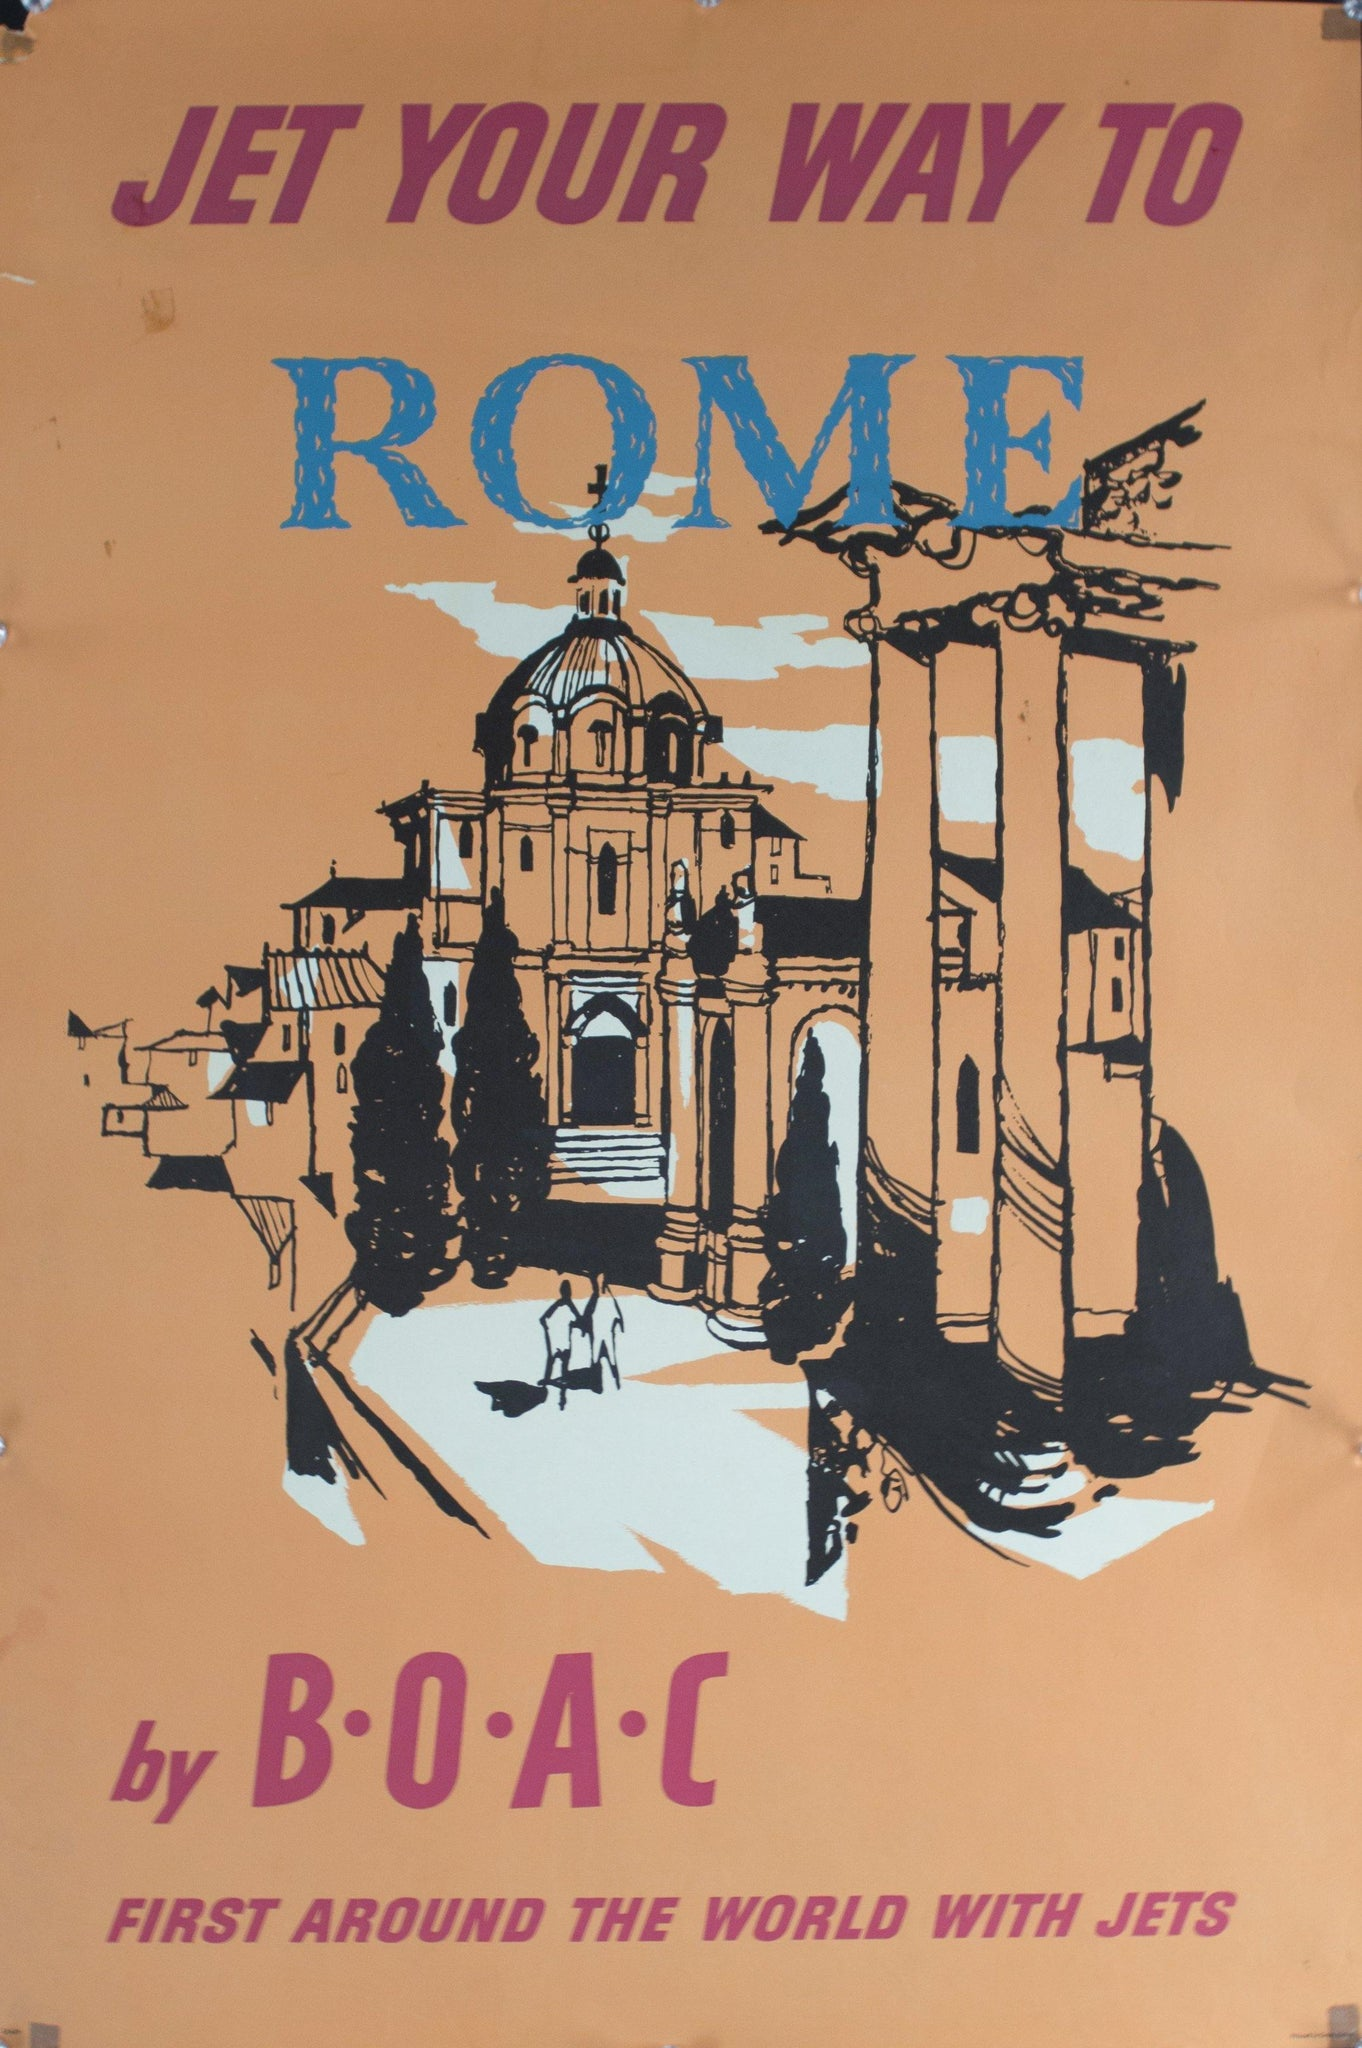 c. 1950s Jet Your Way to Rome by BOAC | First Around the World with Jets